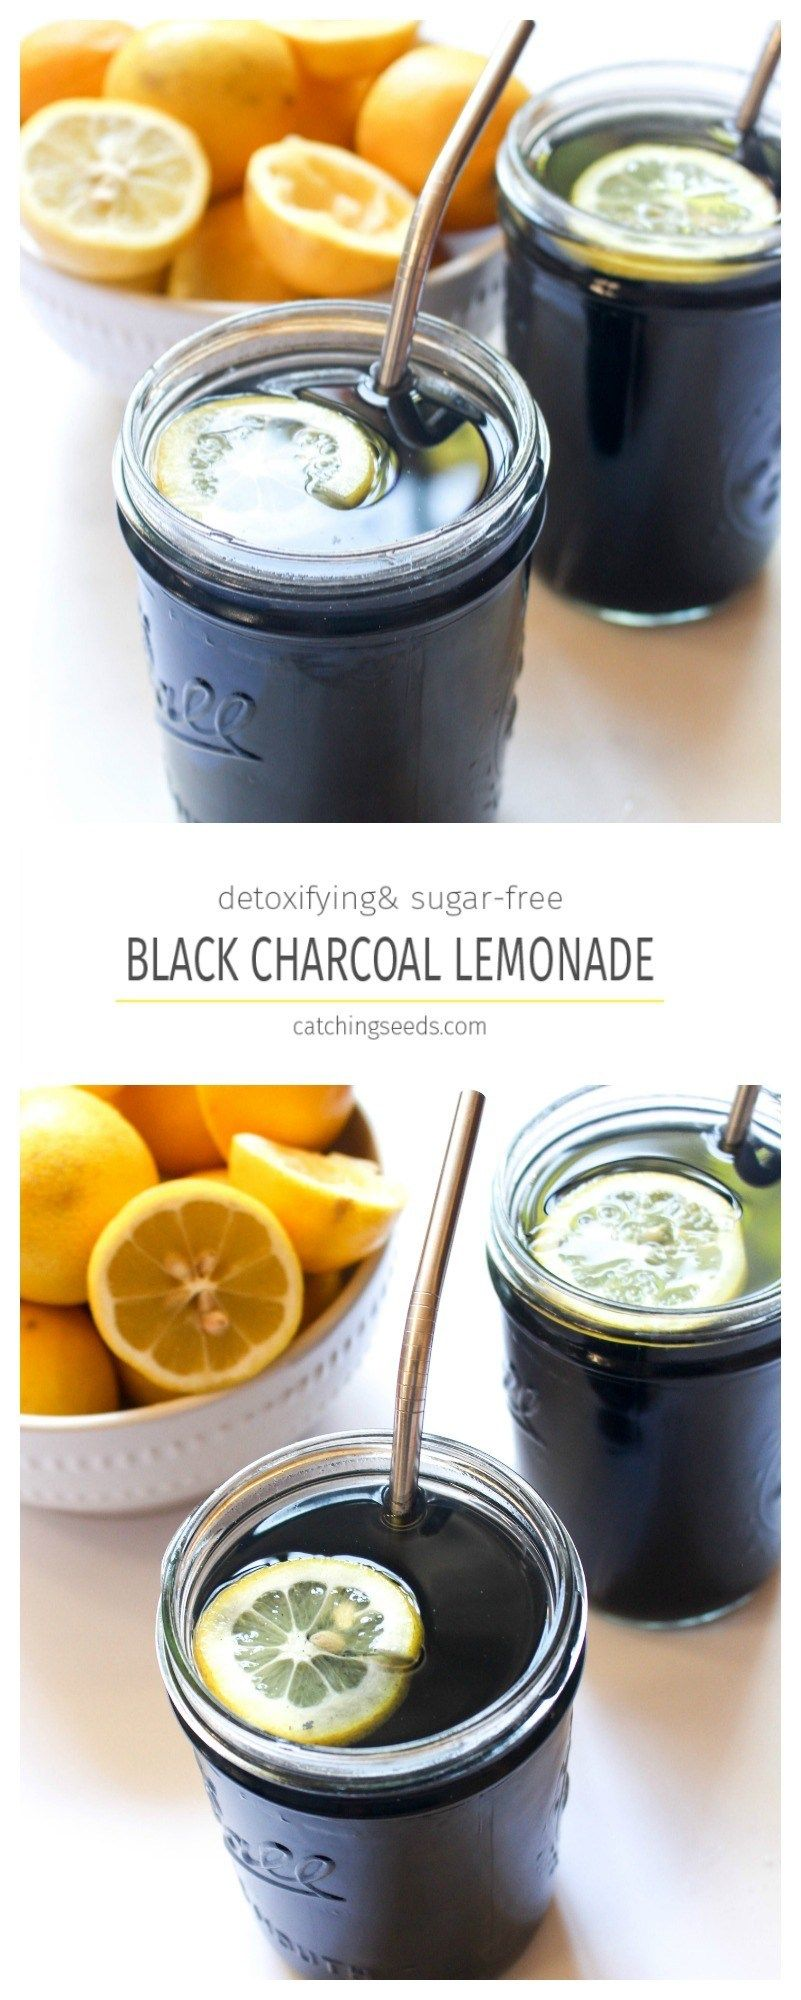 Detox Charcoal Black Lemonade